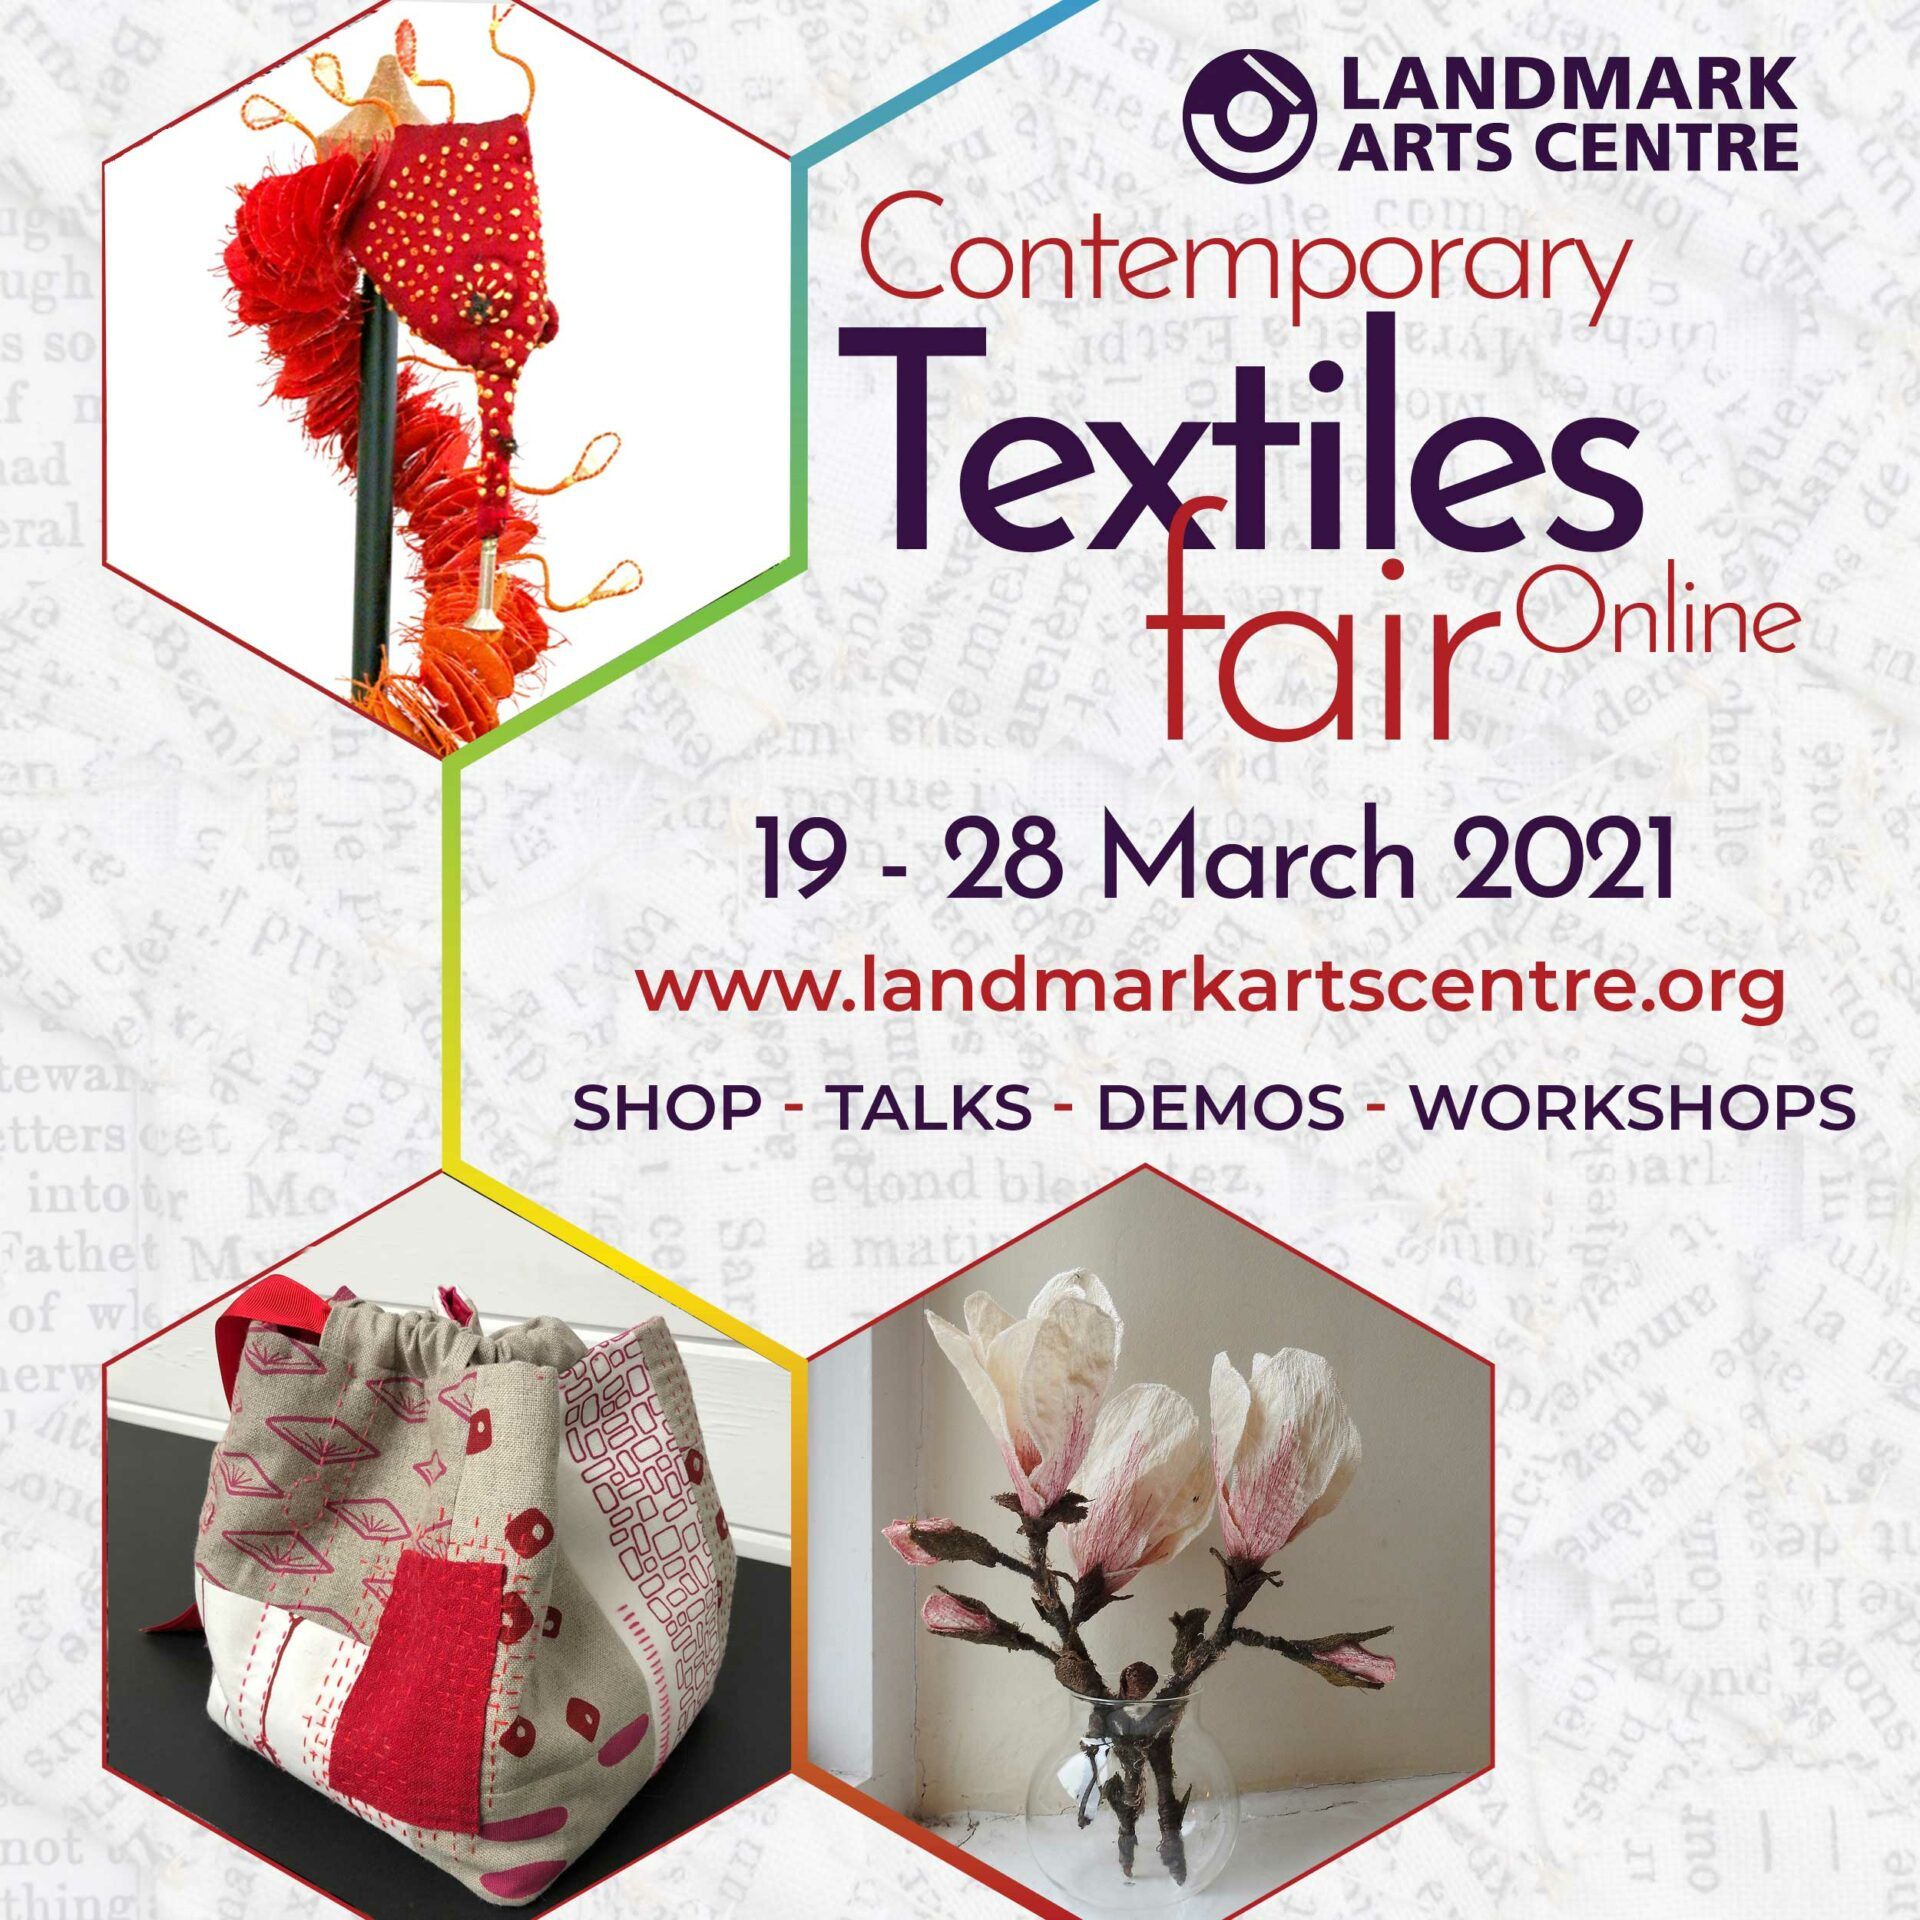 Colette and Samantha will be taking part in the Online Contemporary Textiles Fair, 19-28 March